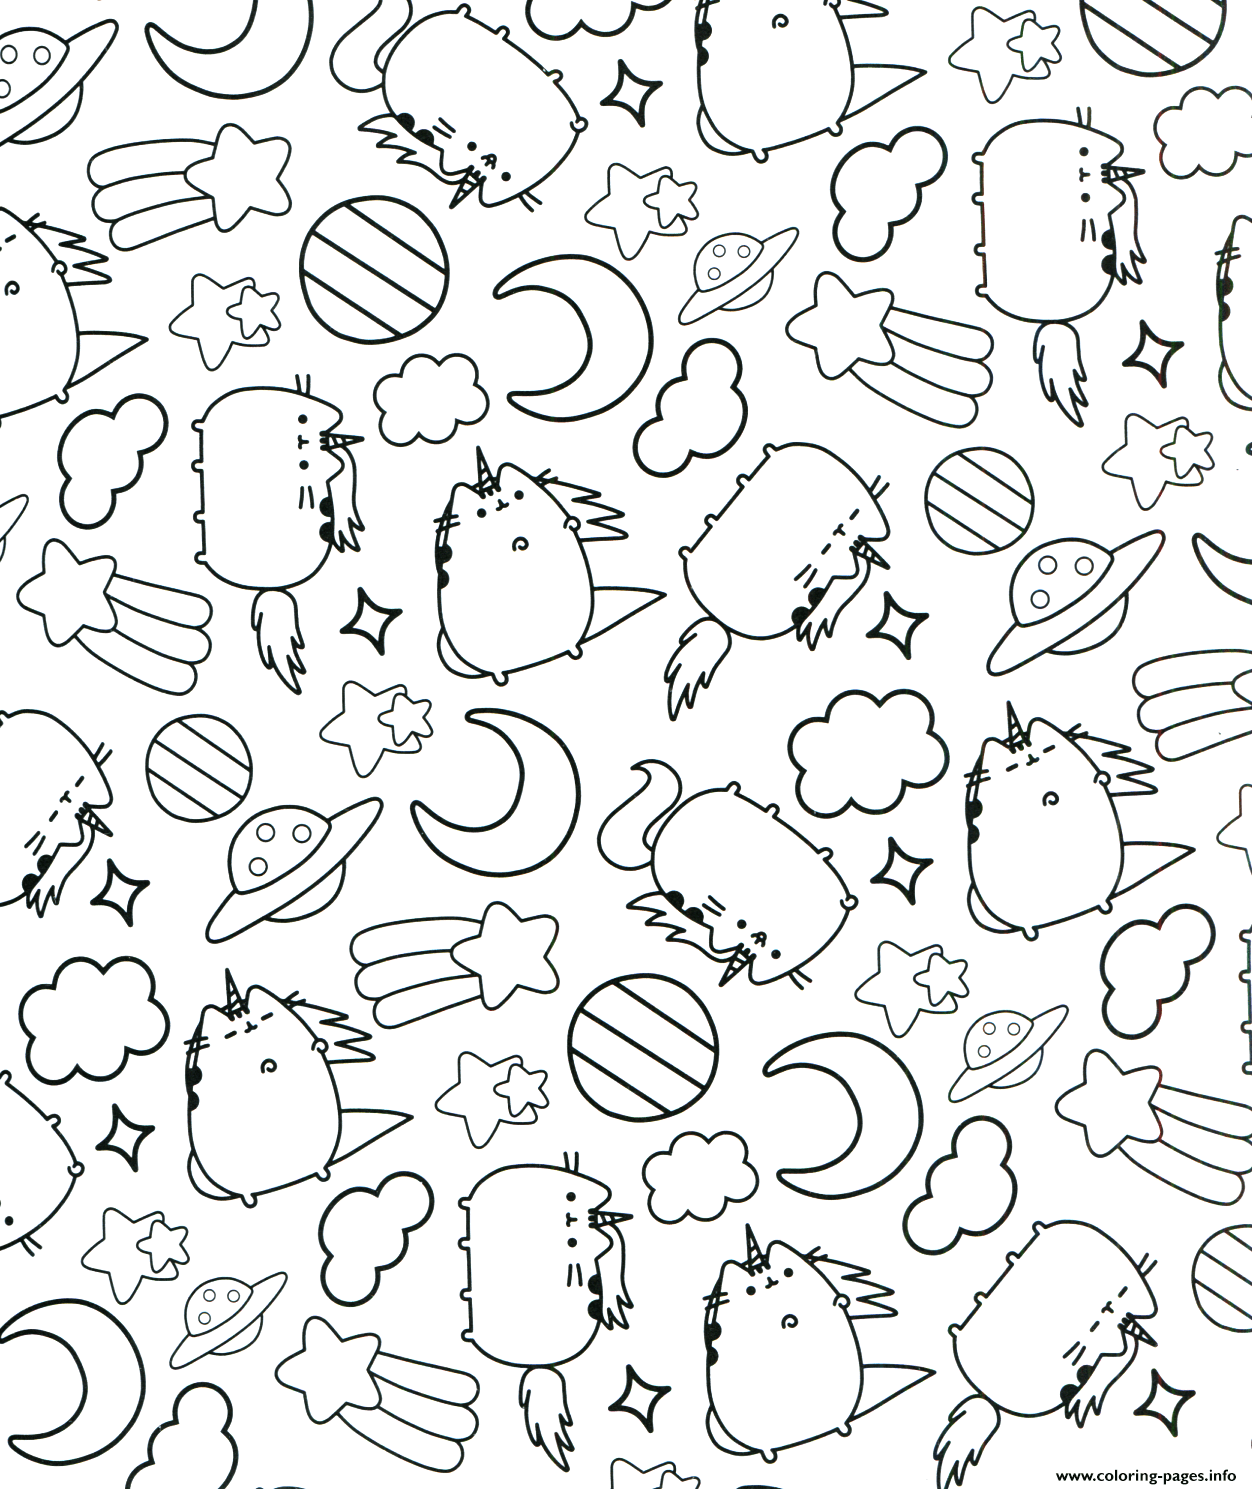 Pusheen The Cat Sleep Pattern Coloring